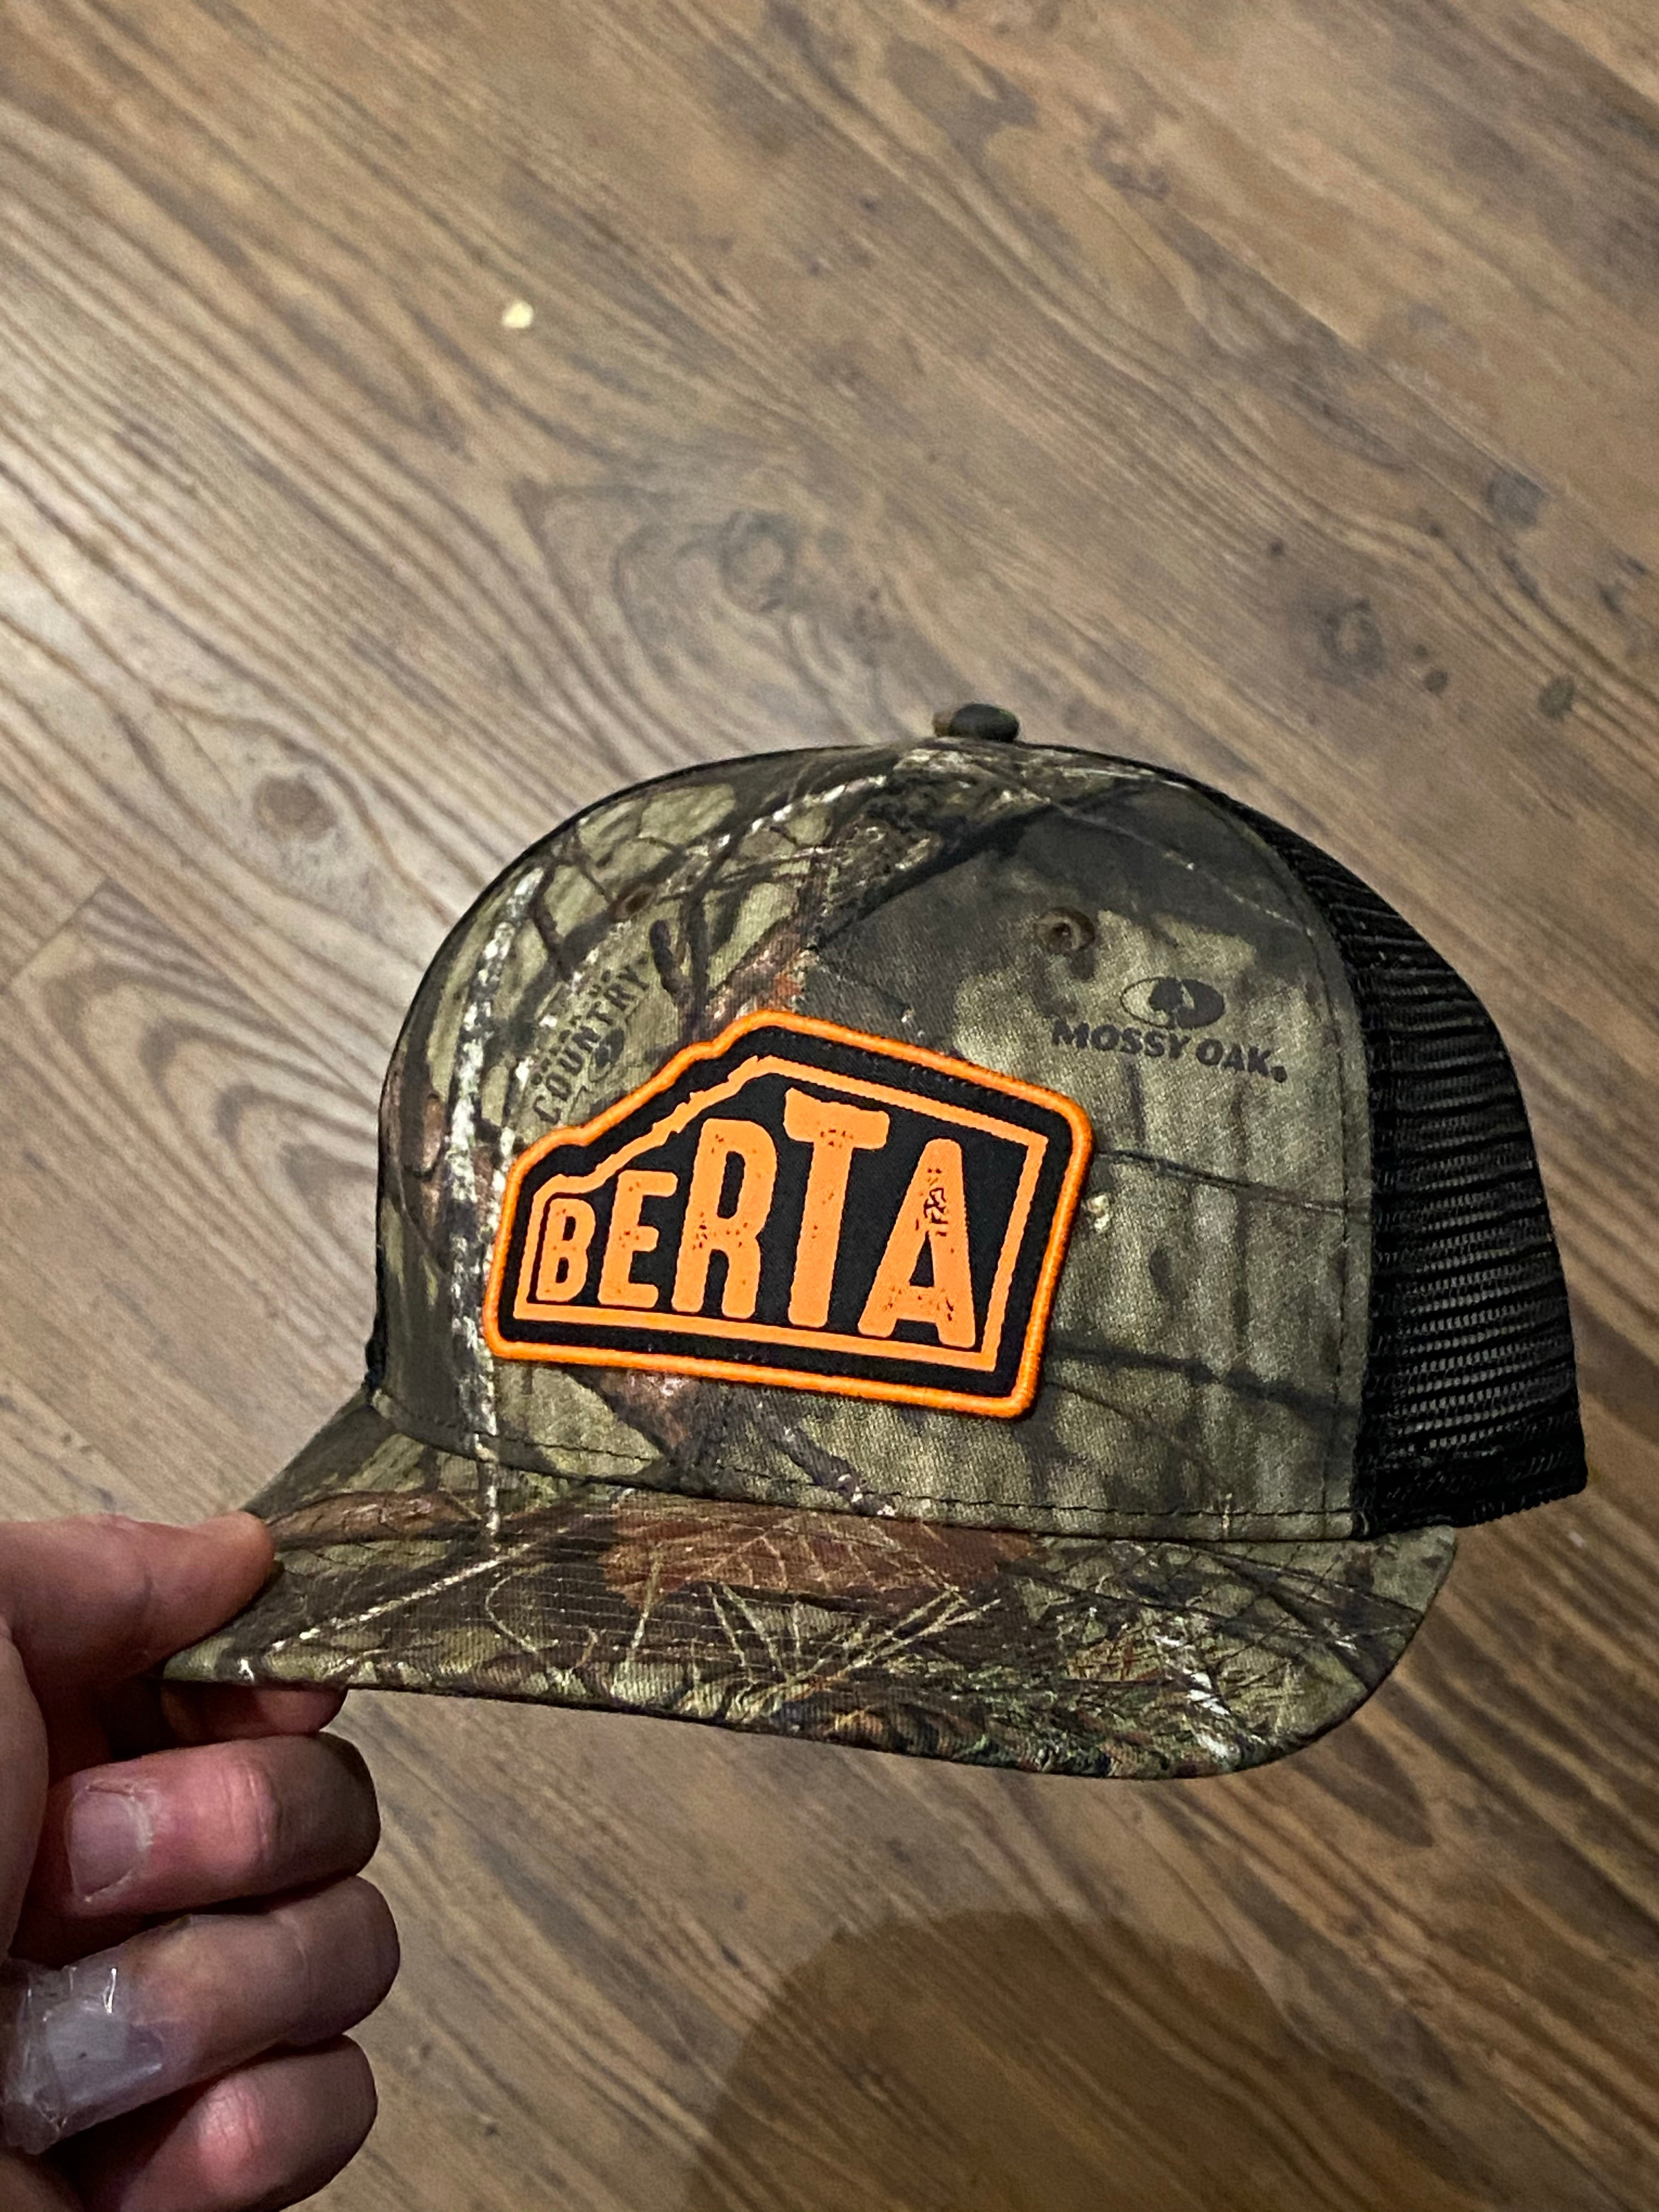 Mossy Oak Berta Trucker Hat | Brouhaha Lid Co